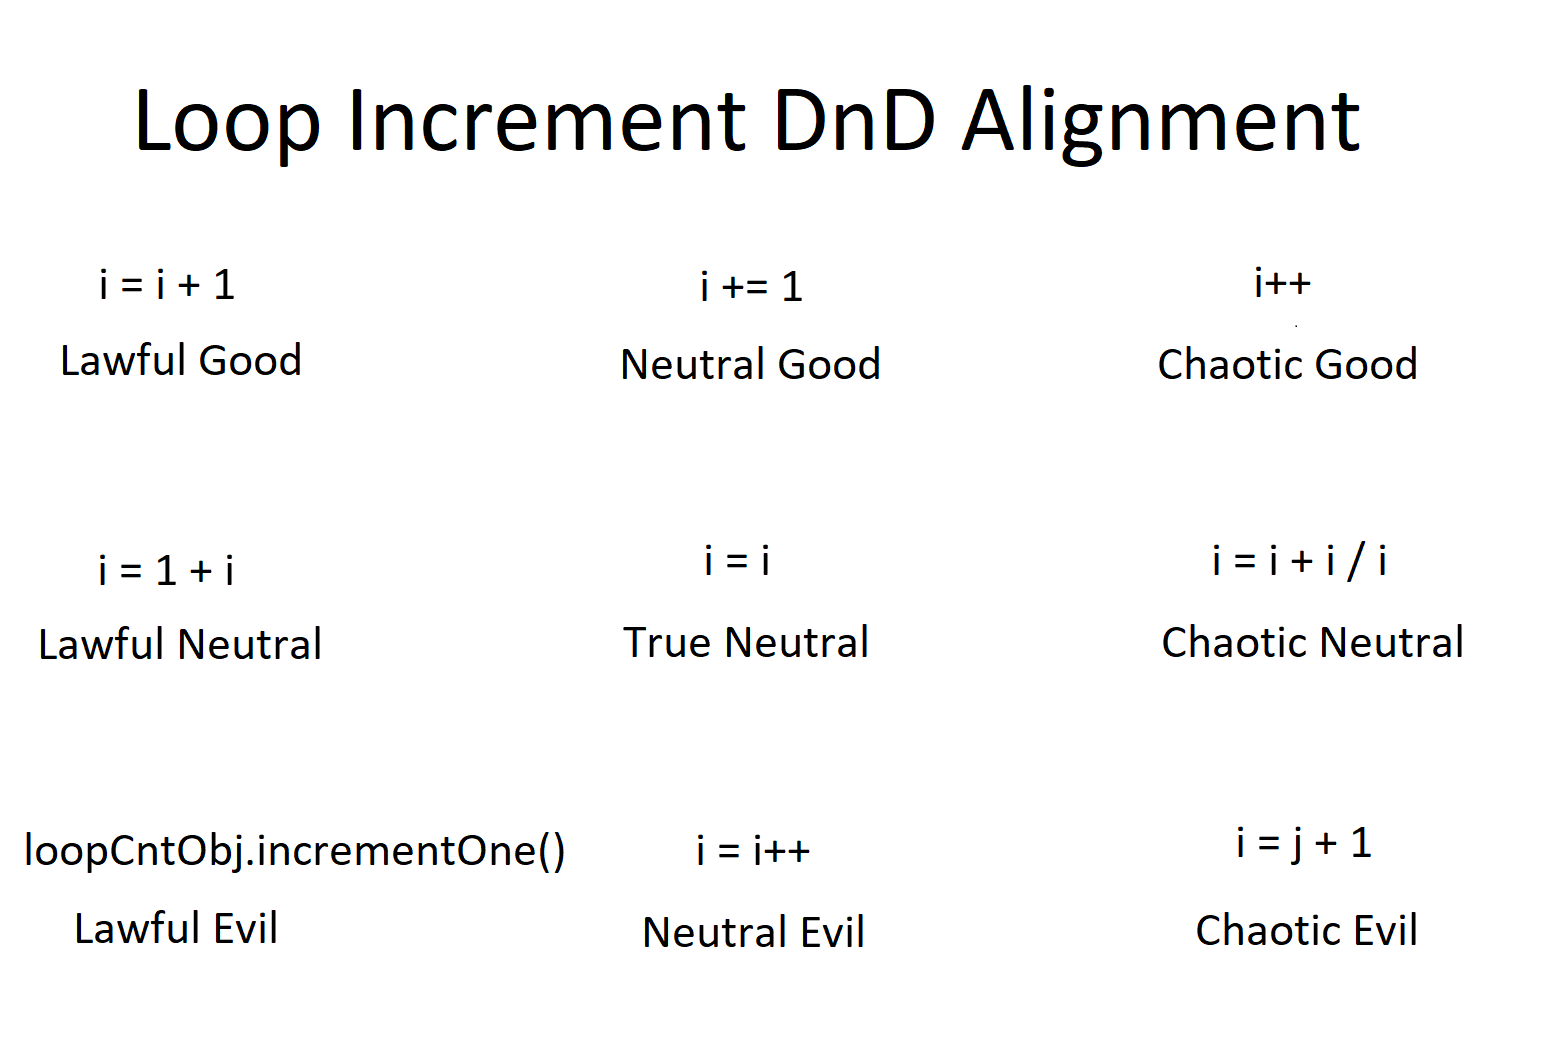 A++ Loop Increment Dnd Alignment Chart Programmerhumor